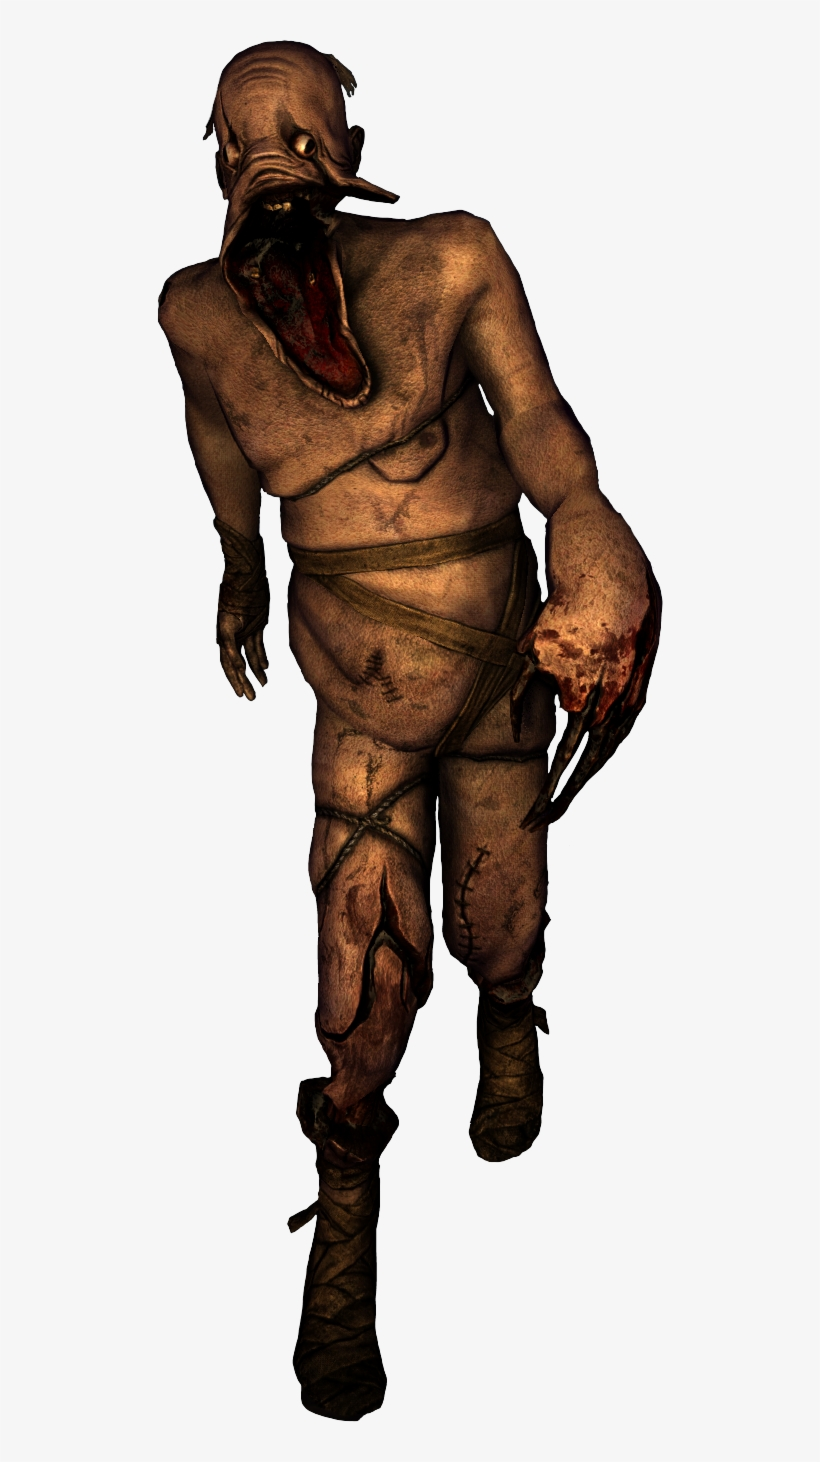 Amnesia Monster Png Jpg Royalty Free Stock Amnesia The Dark Descent Monster Png Free Transparent Png Download Pngkey